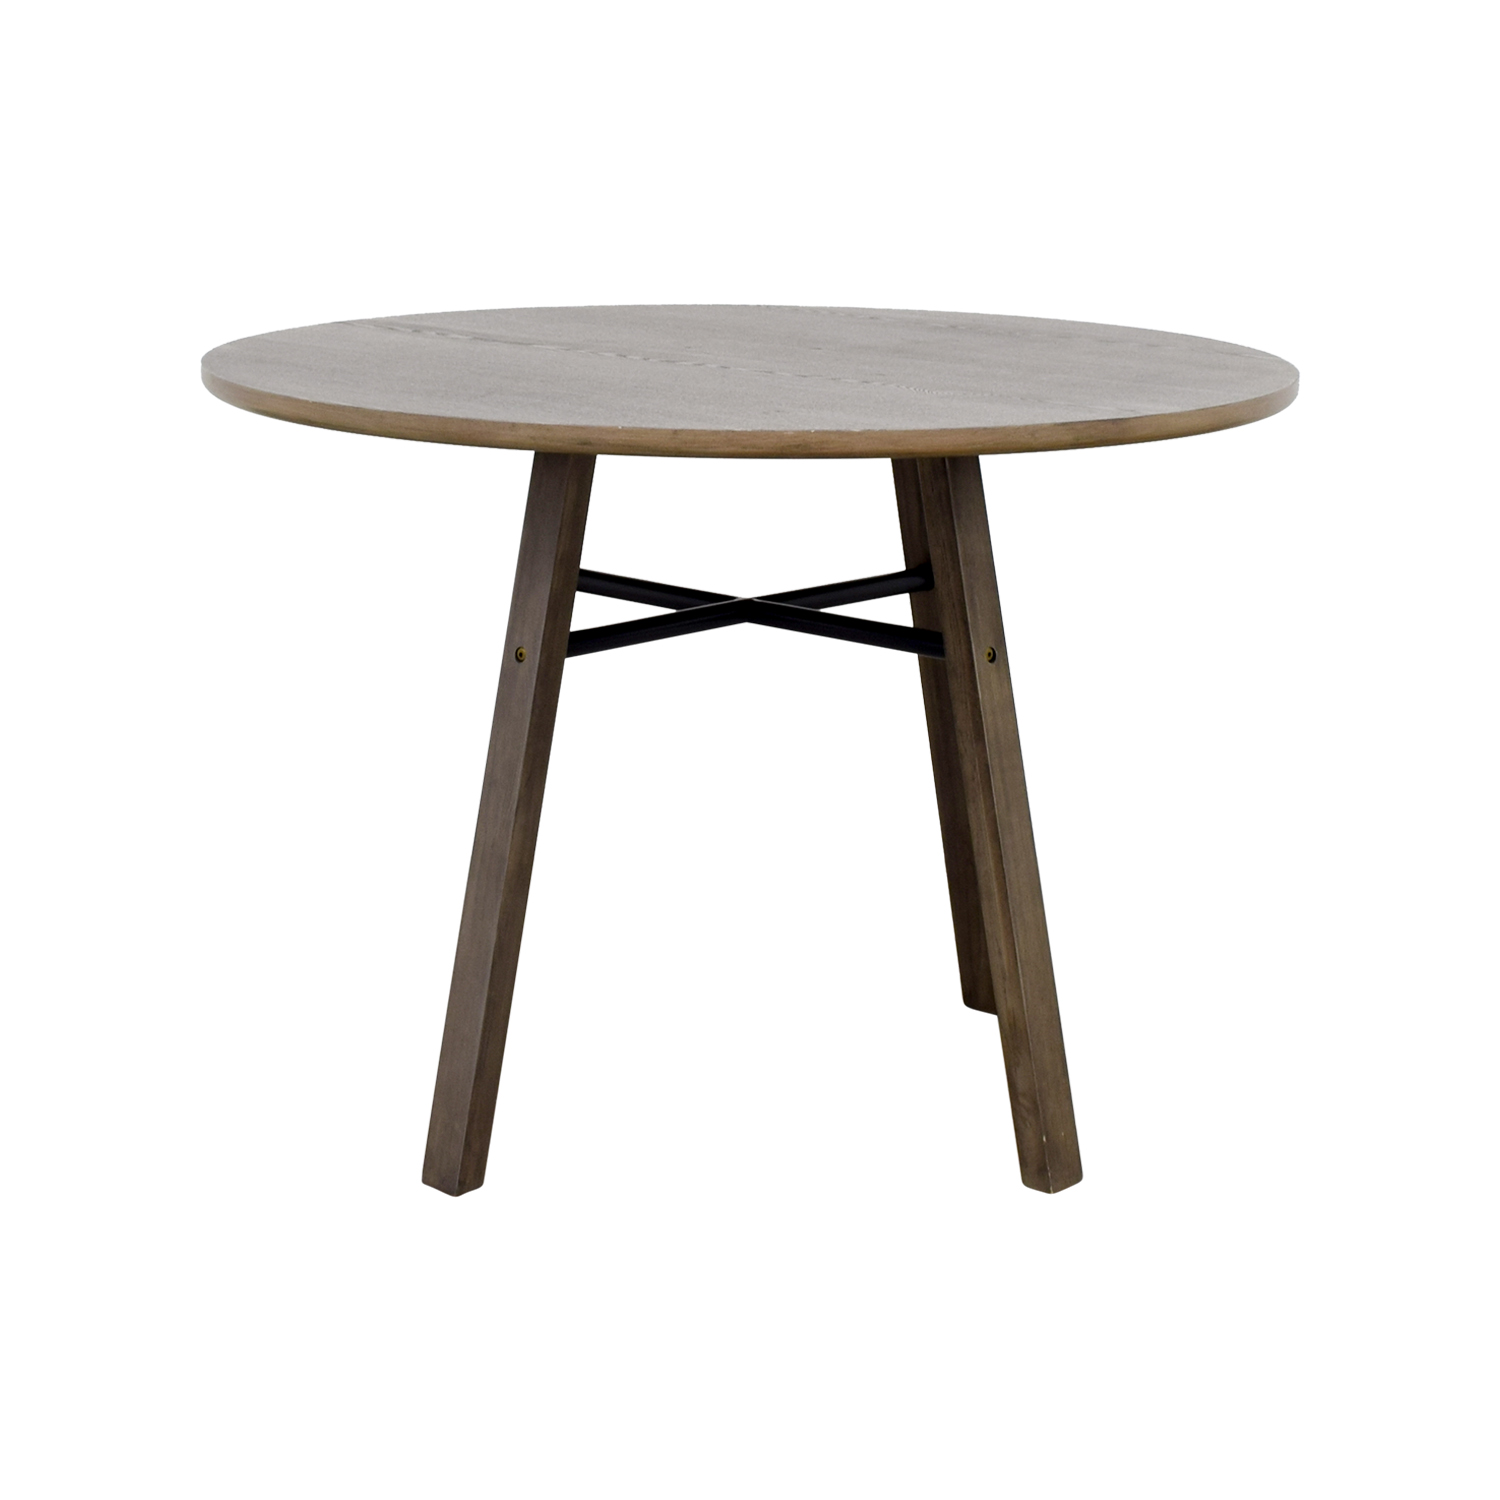 Crate & Barrel Crate & Barrel Mid-Century Dining Table Dinner Tables